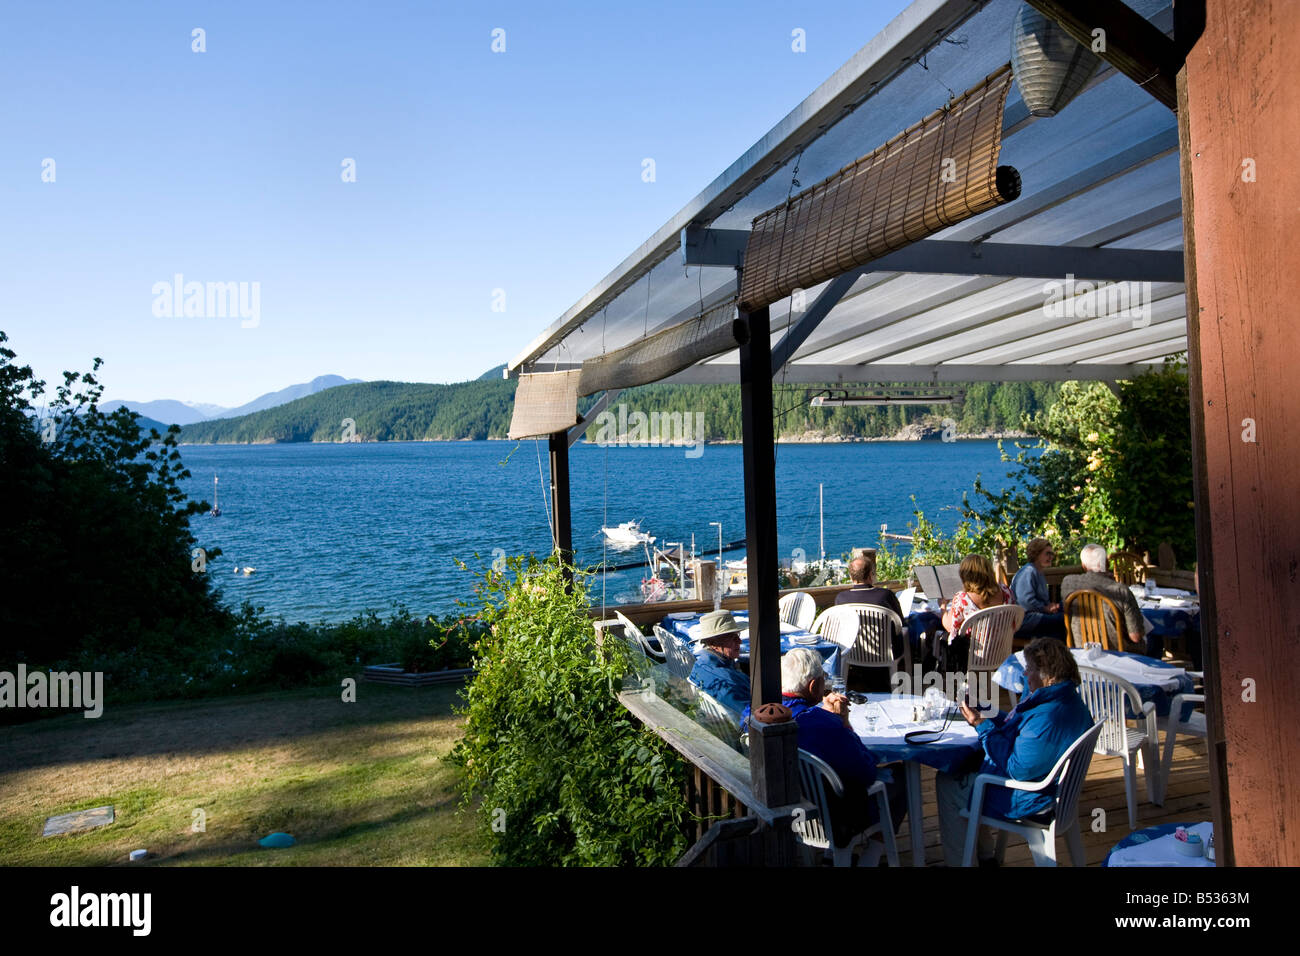 Laughing Oyster Restaurant, Malaspina Inlet Desolation Sound British Columbia Canada - Stock Image